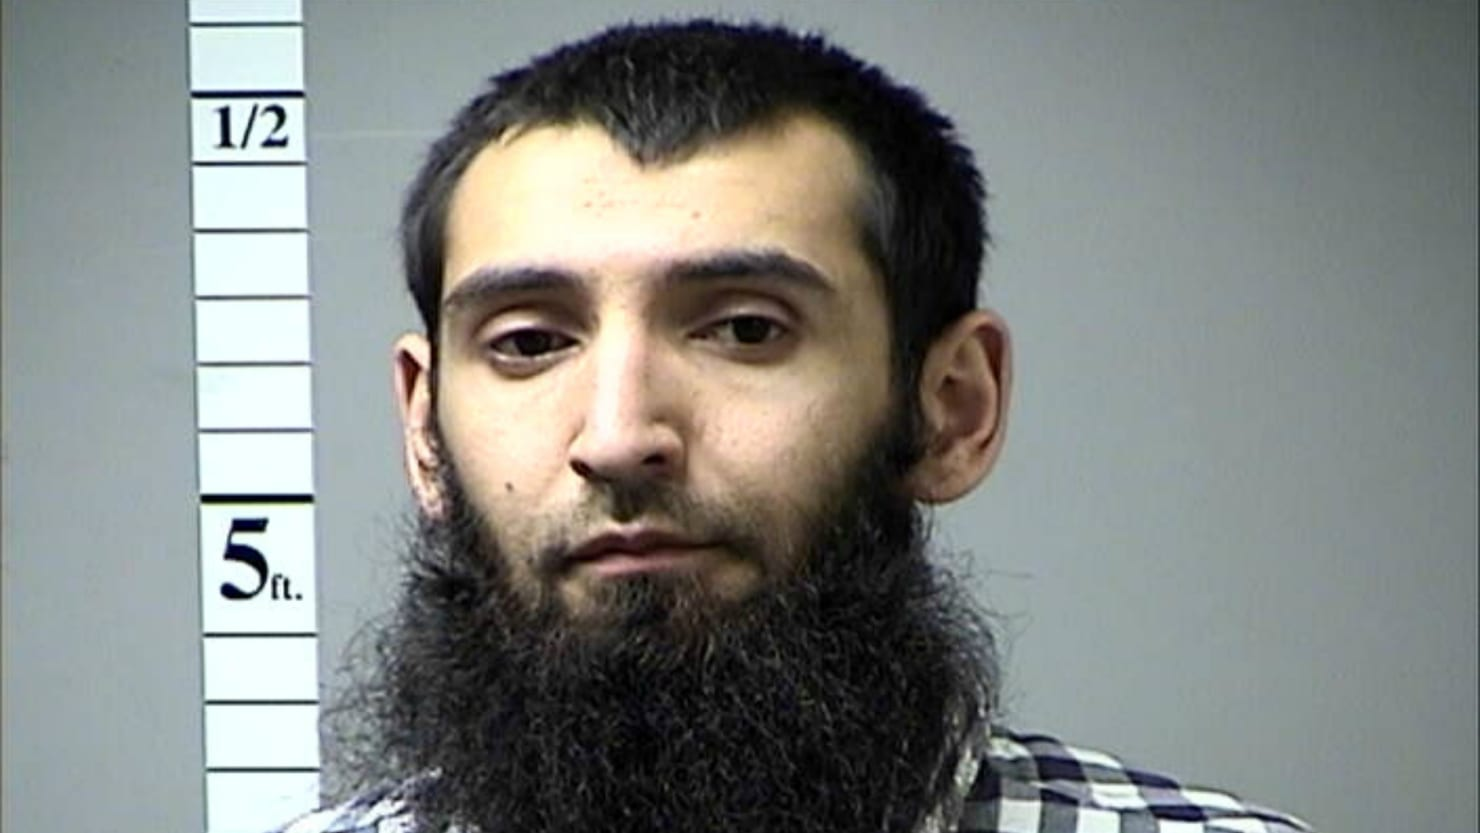 Terrorist Requested ISIS Flag for His Hospital Room, FBI Says